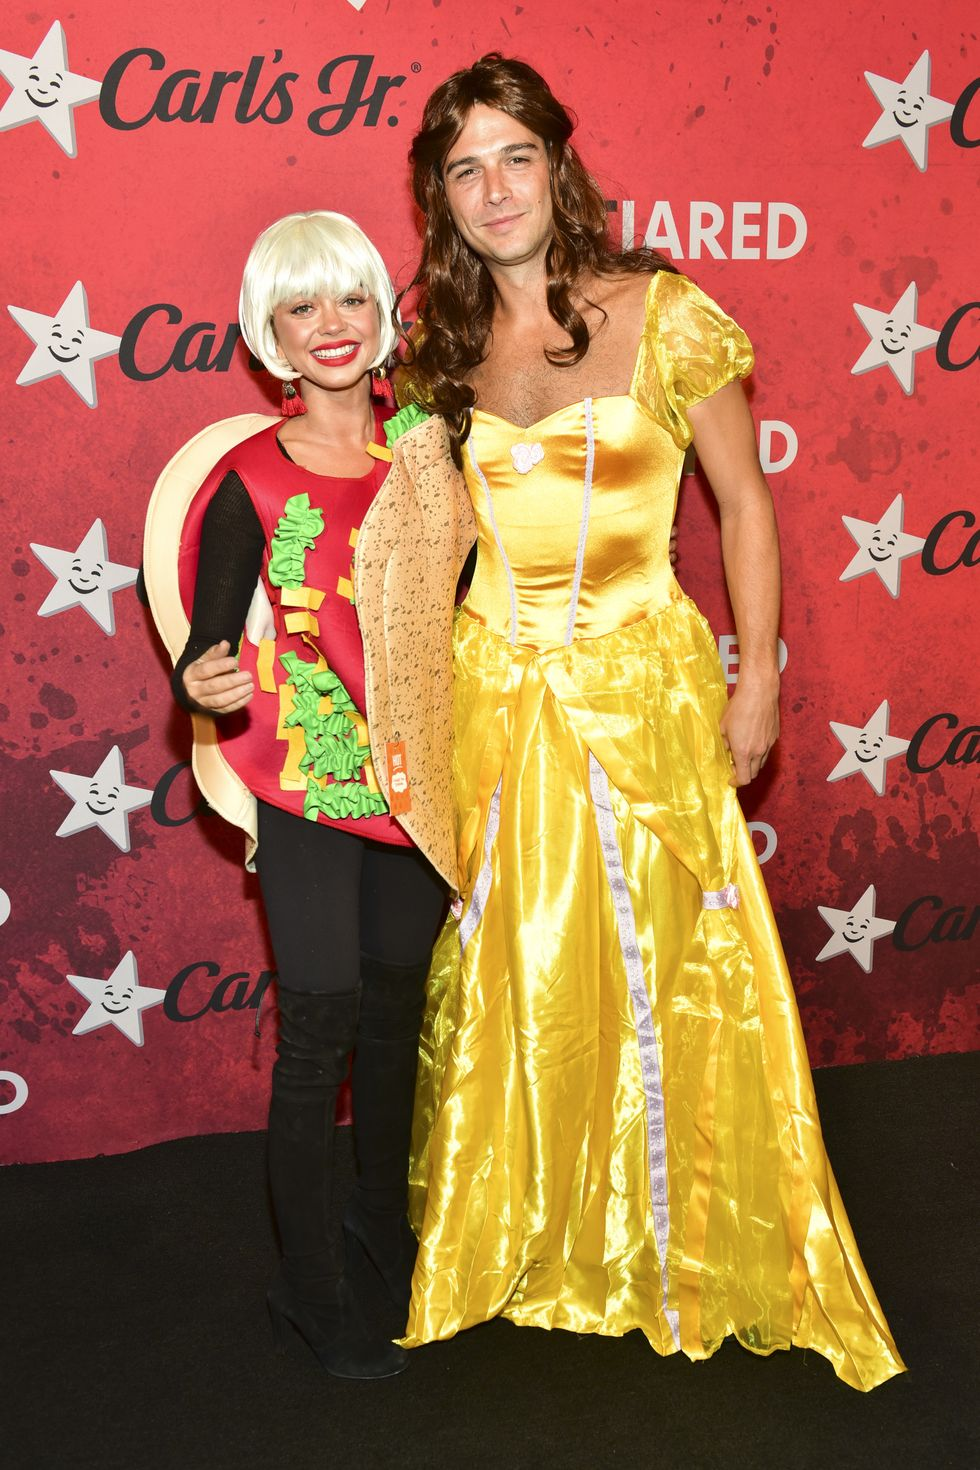 Sarah Hyland and Wells Adam as 'Taco Belle', with Wells dressed as Belle from Beauty and the Beast and Sarah as a taco.